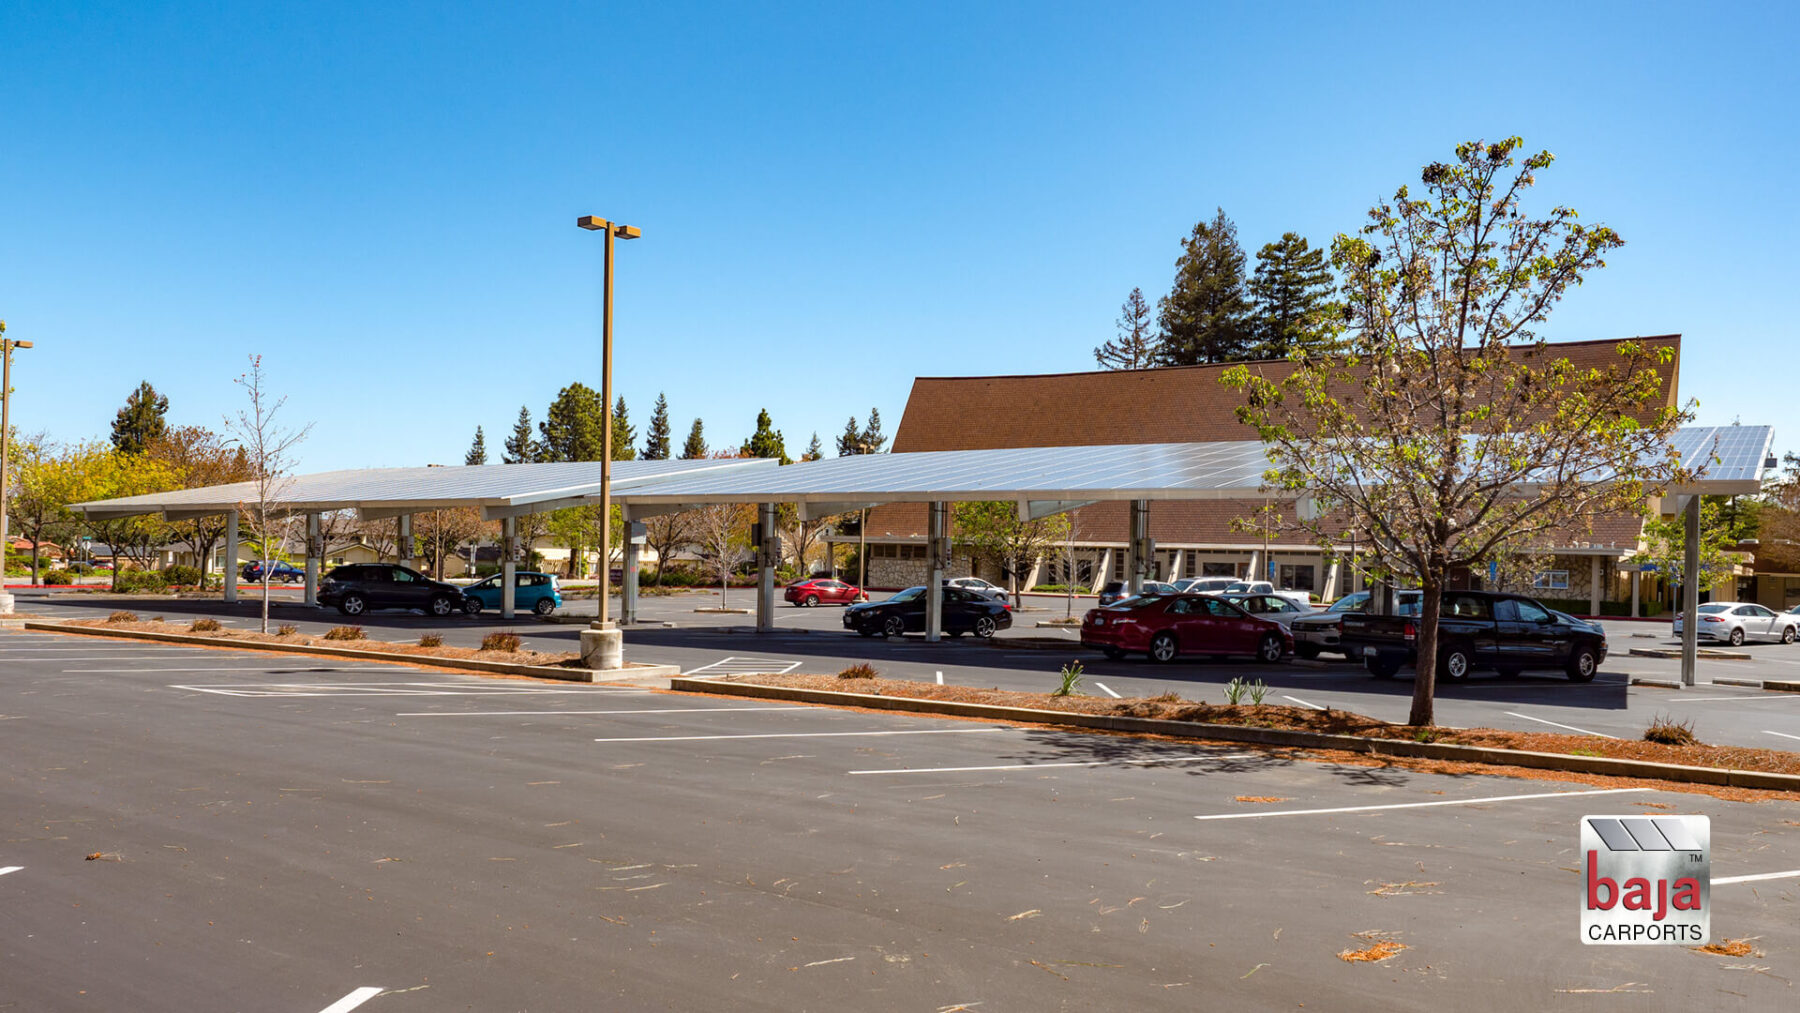 sunnyvale church installs solar carports